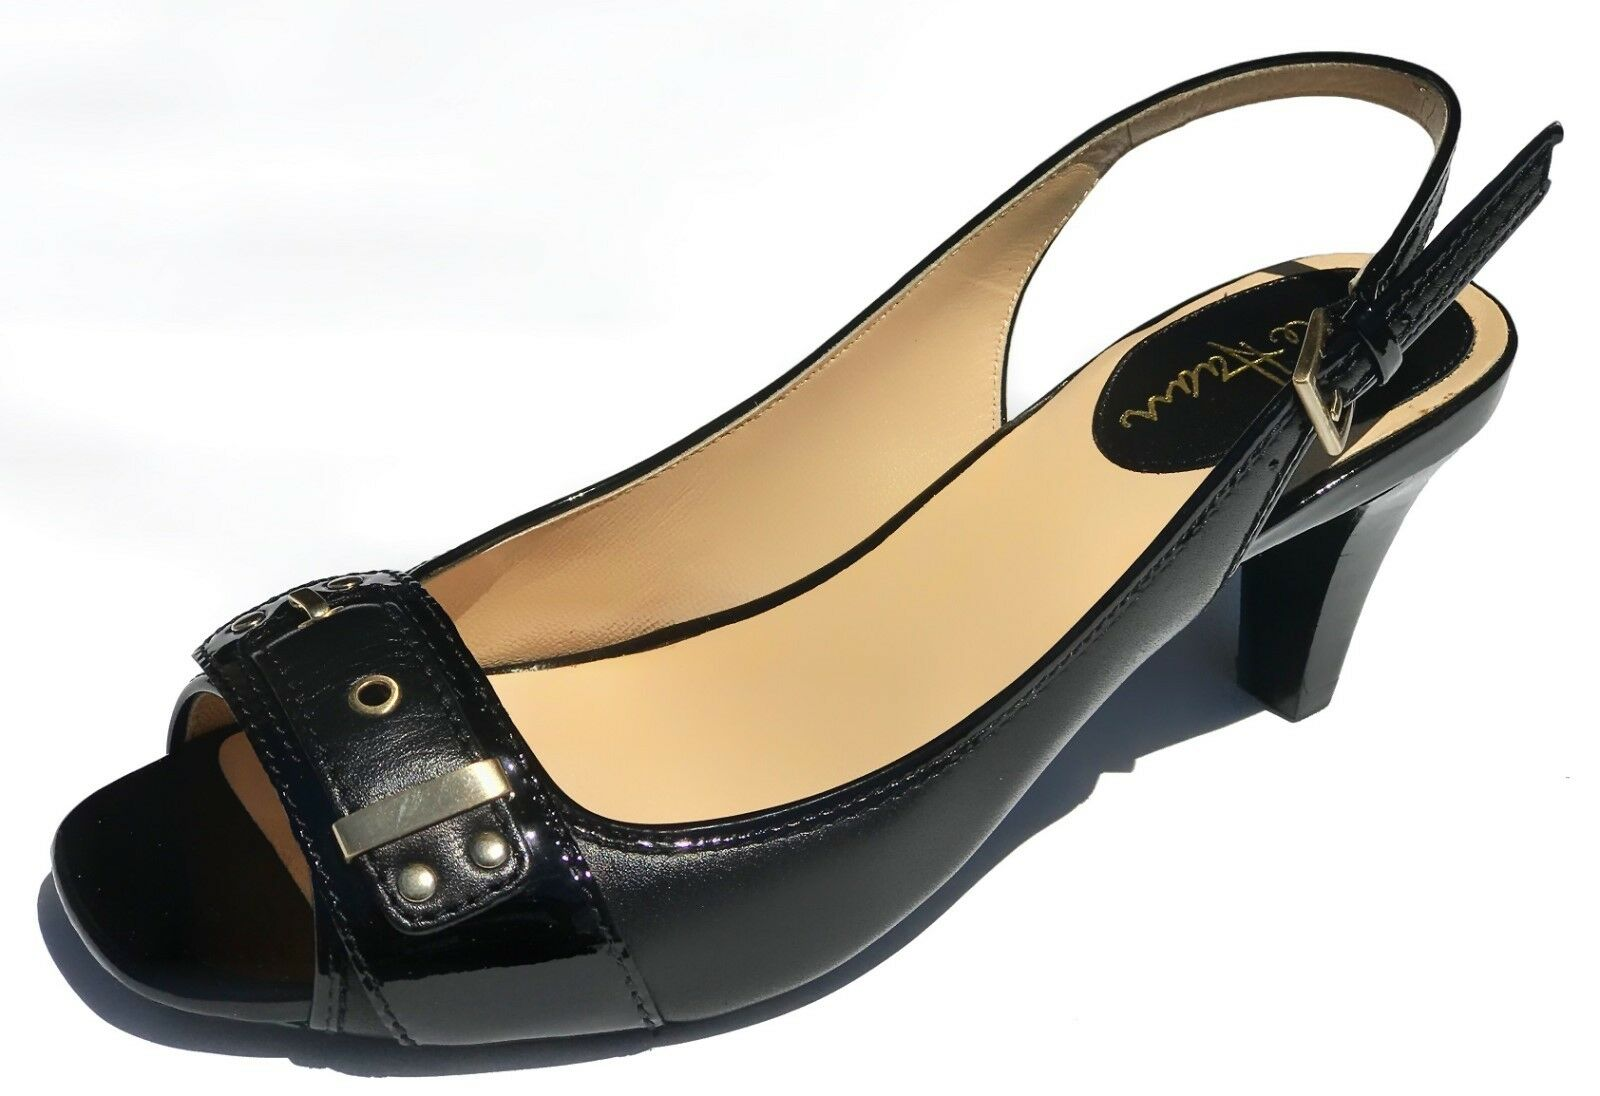 180 Cole Haan Women's Air Ivette Open Toe Slingback Heel shoes 6 NEW IN BOX